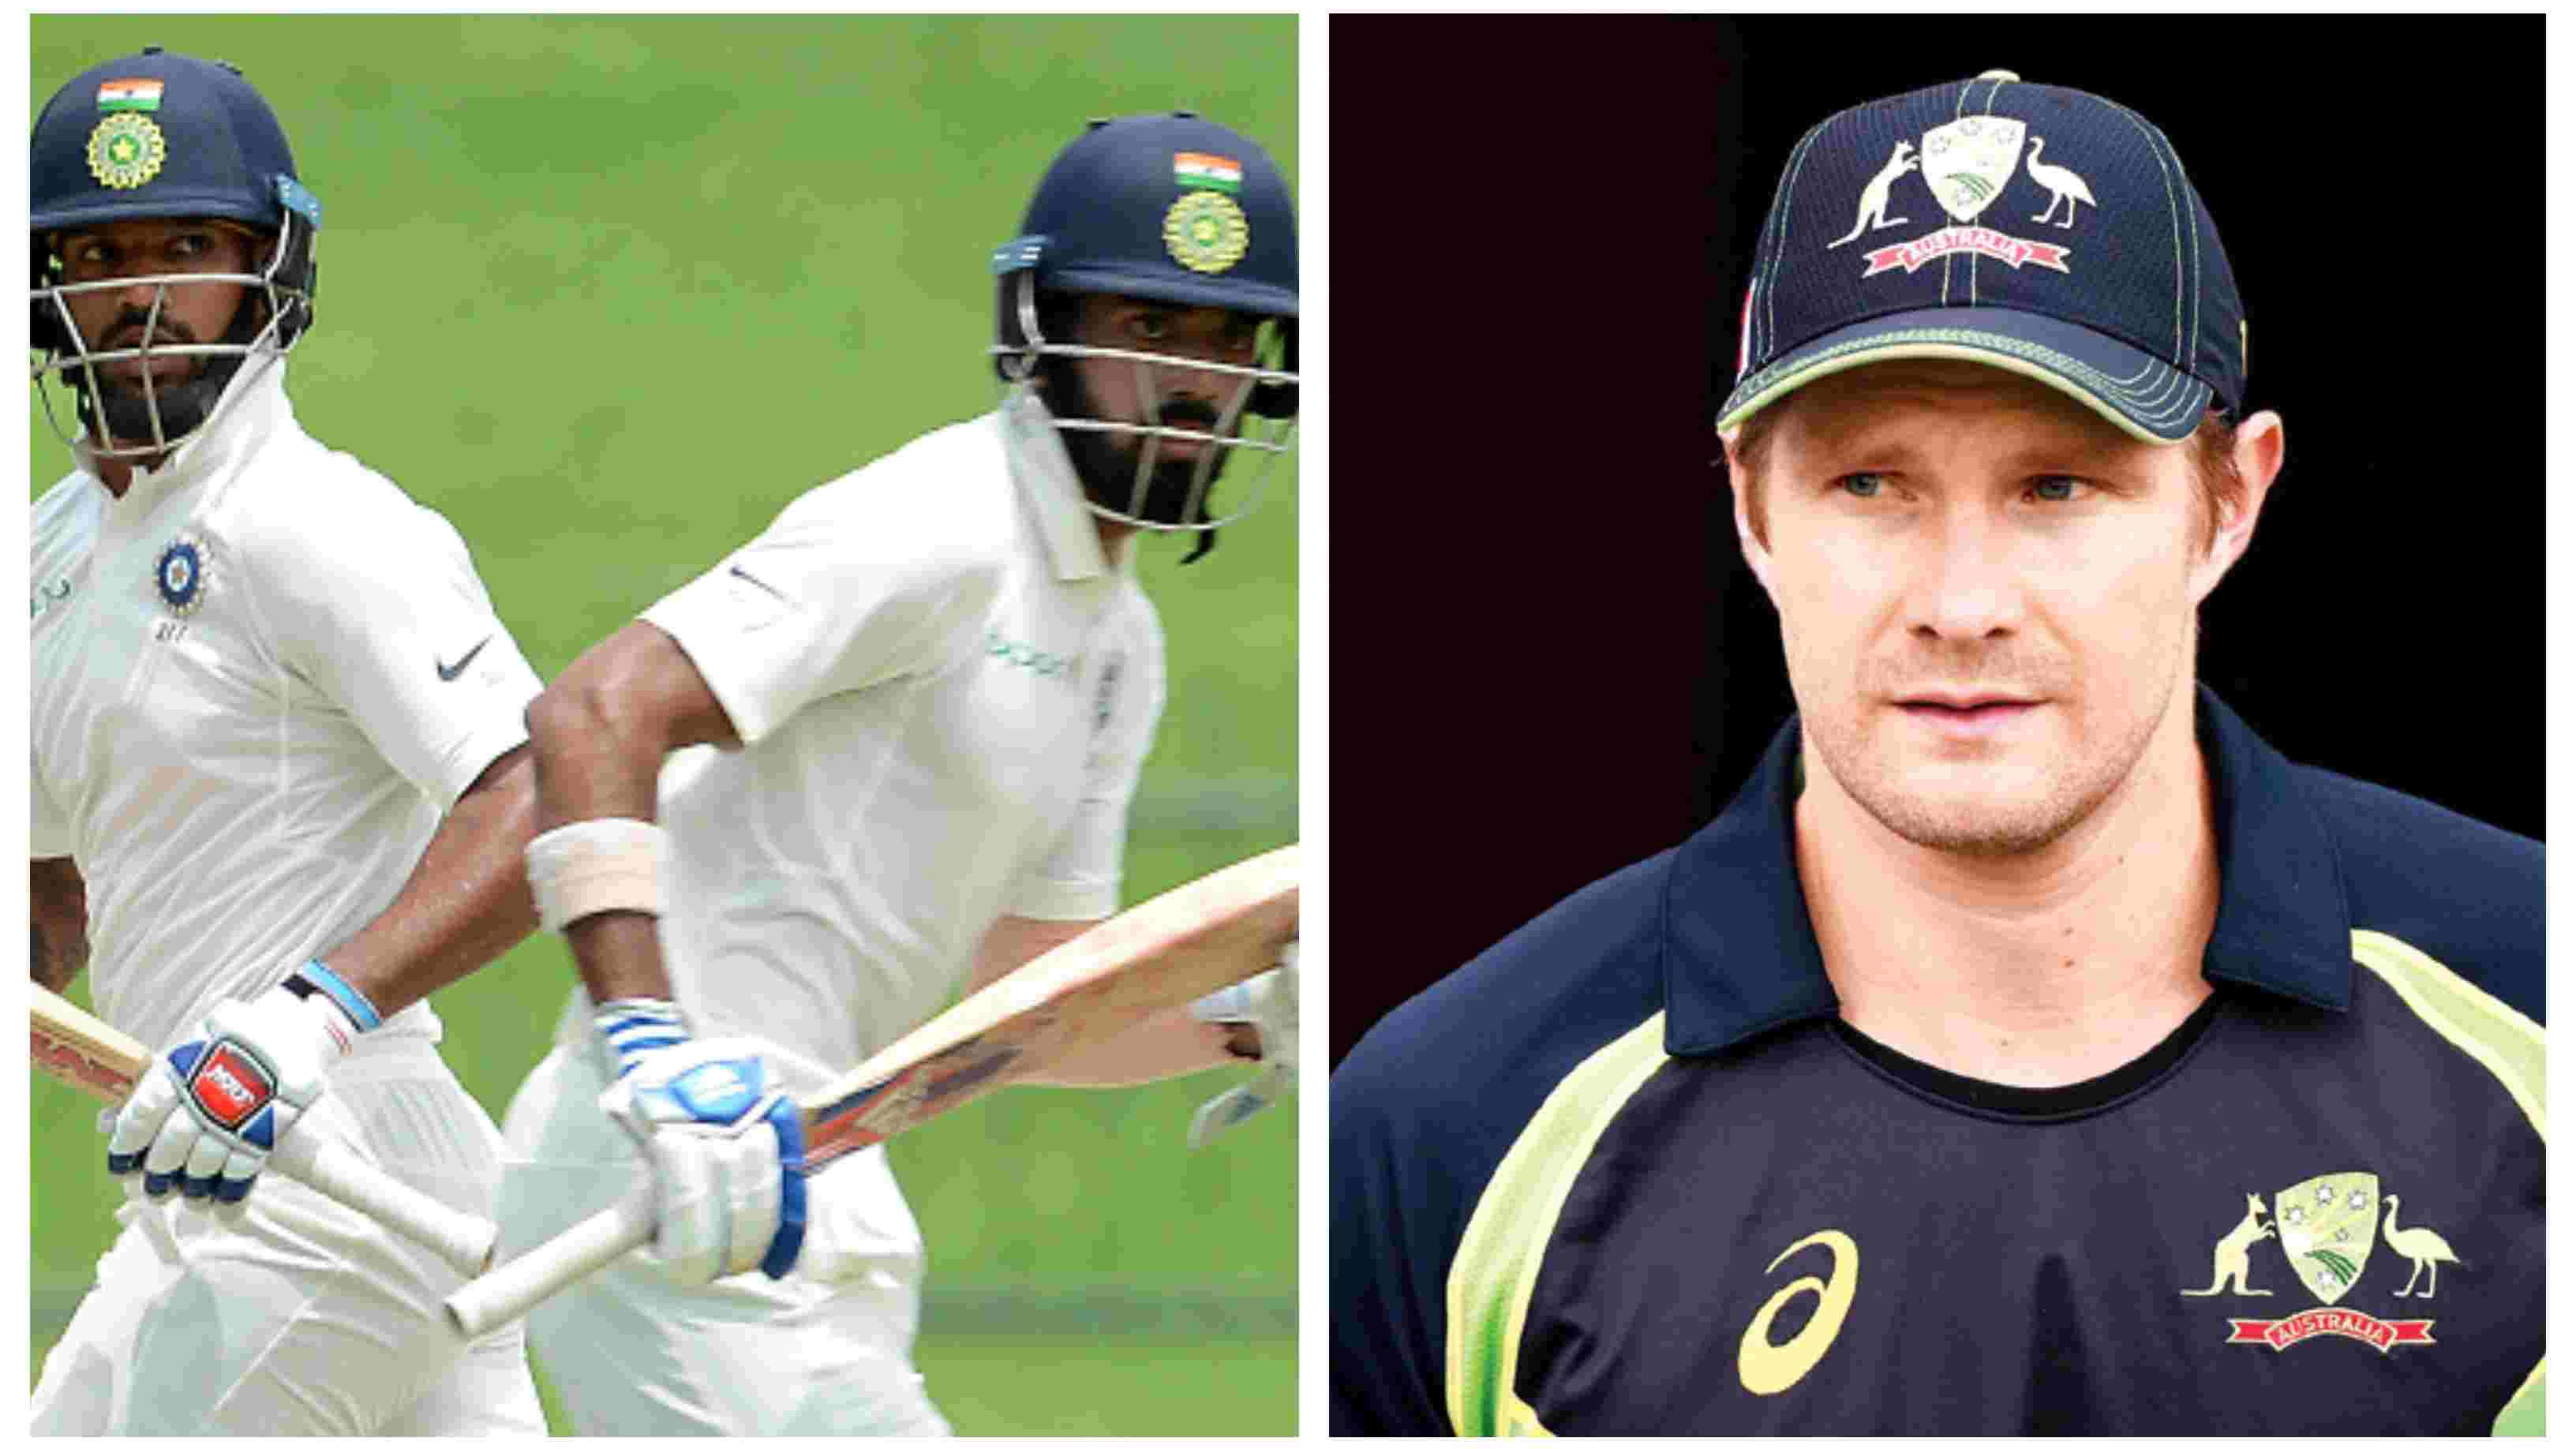 ENG v IND 2018: Struggling Indian batsmen will fare much better in Australia, reckons Shane Watson